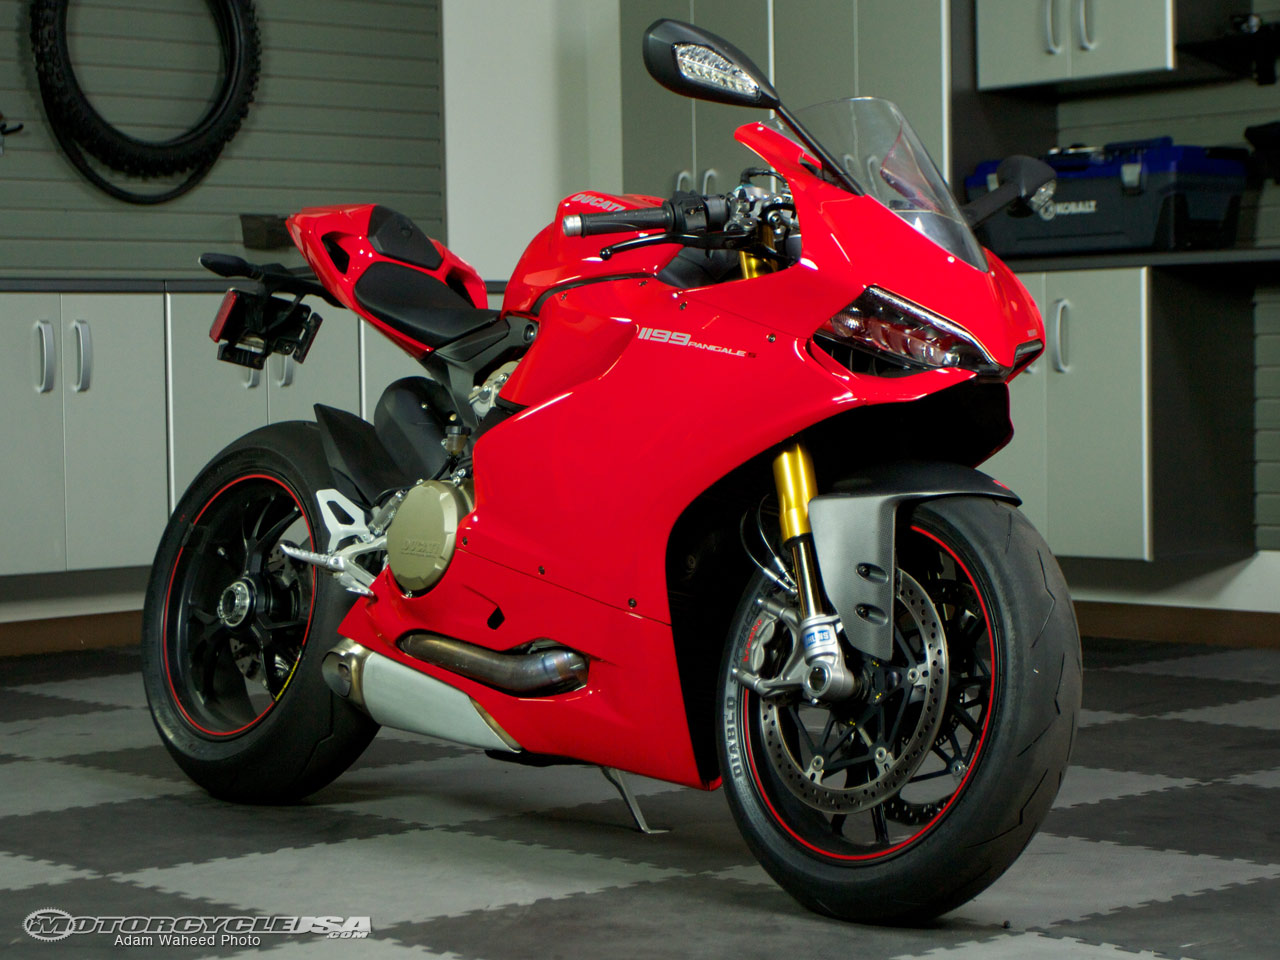 2012 Ducati 1199 Panigale S Superbike Street Smackdown Photos - Motorcycle USA